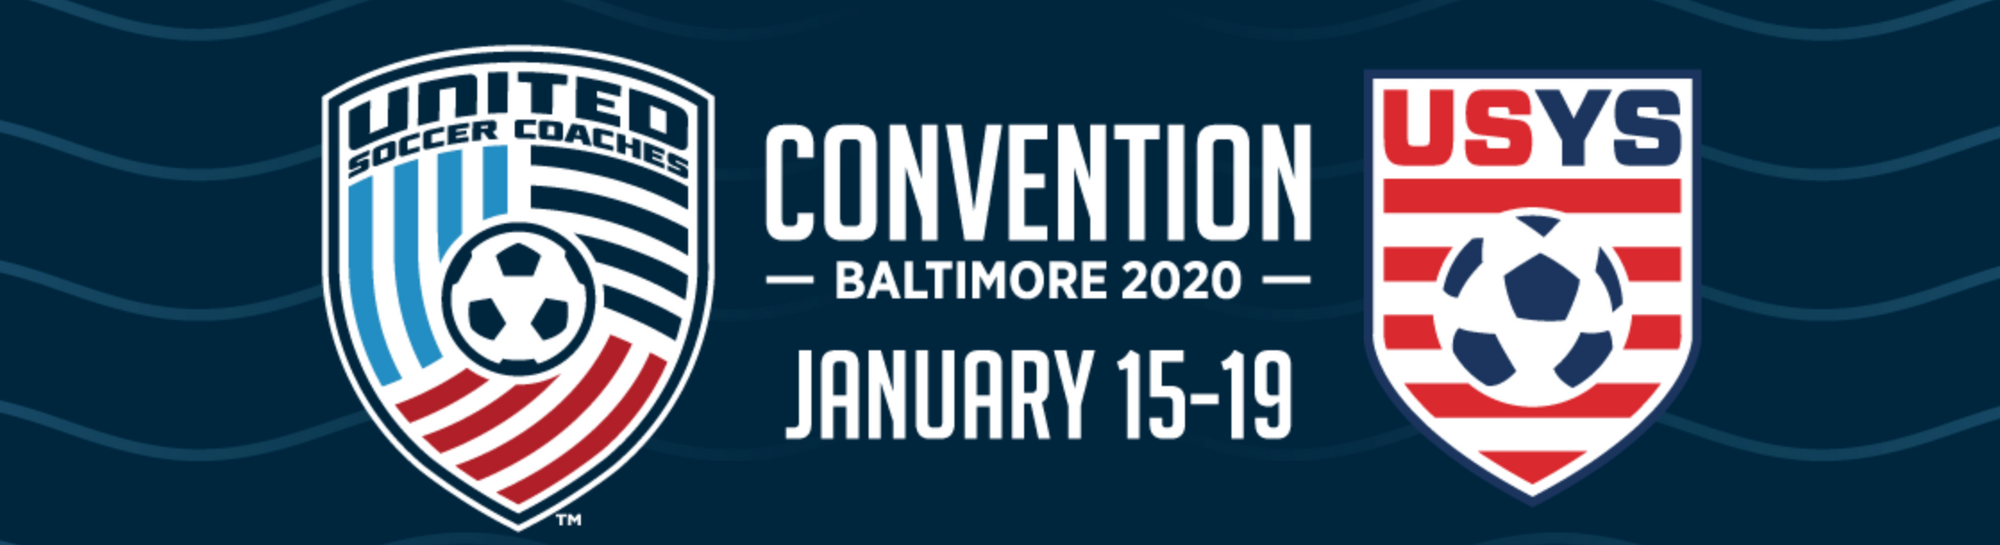 Kickit at the United Soccer Coaches Convention 2020 Baltimore